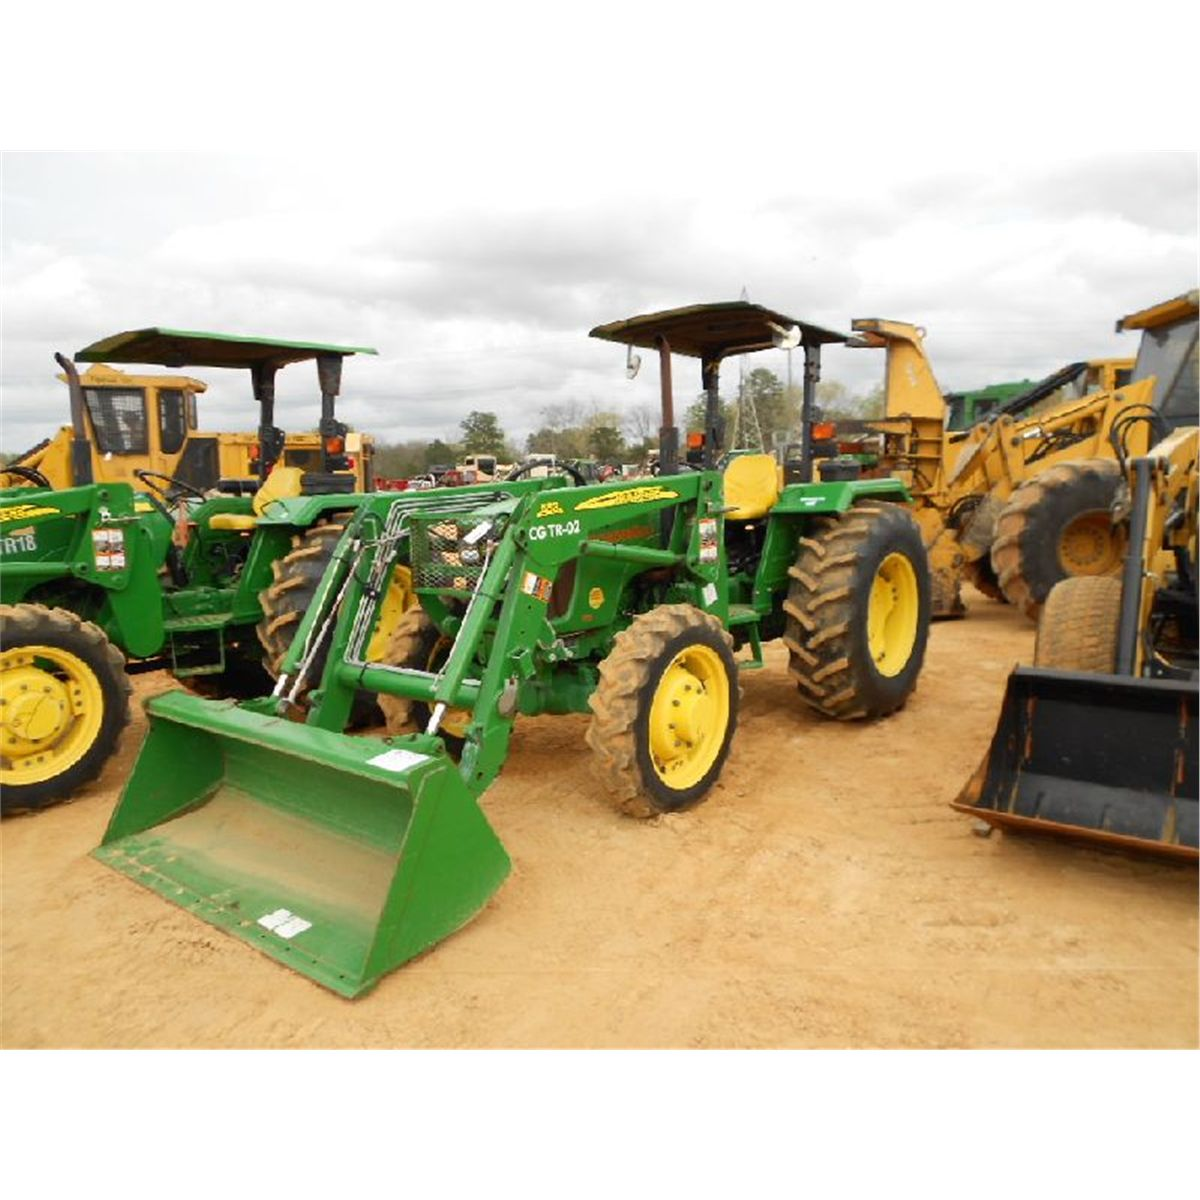 john deere 5075e 4x4 farm tractor. Black Bedroom Furniture Sets. Home Design Ideas